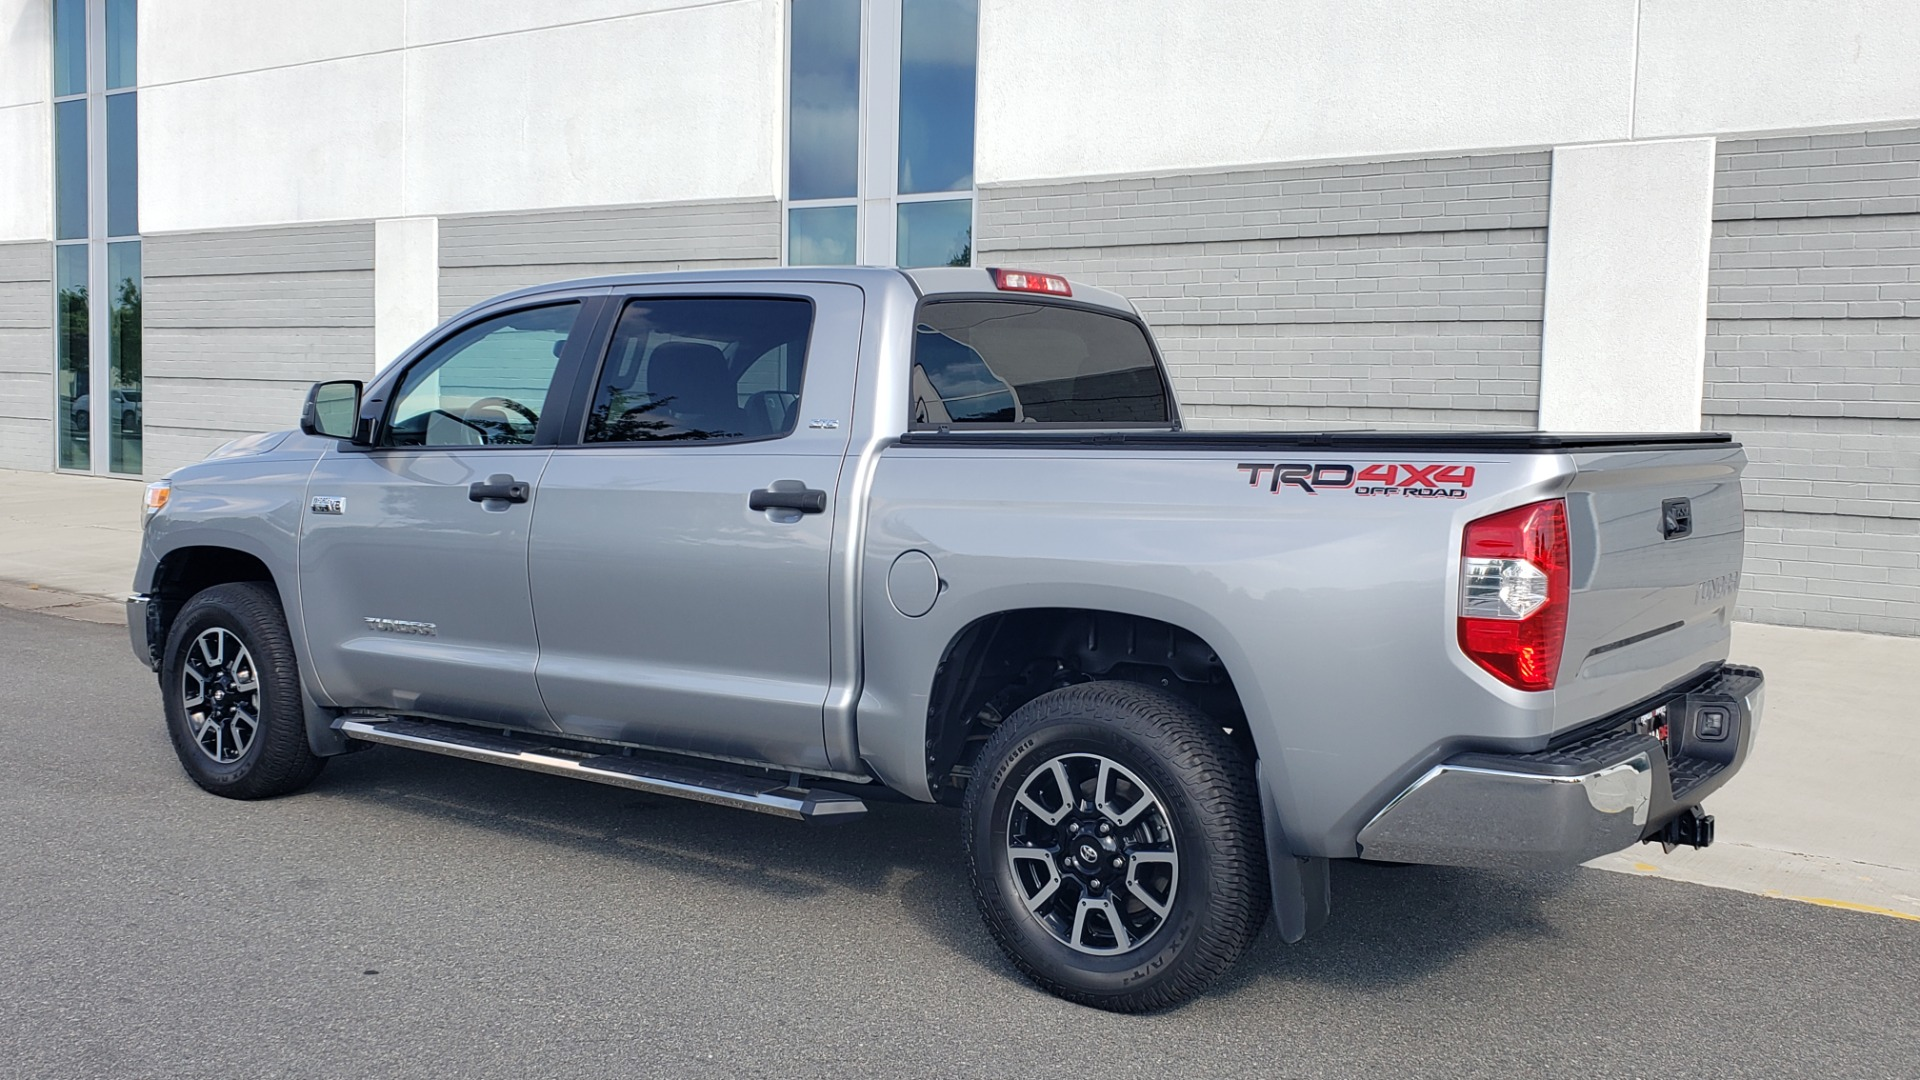 Used 2017 Toyota TUNDRA 4WD SR5 CREWMAX / 5.7L V8 / 6-SPD AUTO / NAV / REARVIEW for sale $44,395 at Formula Imports in Charlotte NC 28227 6